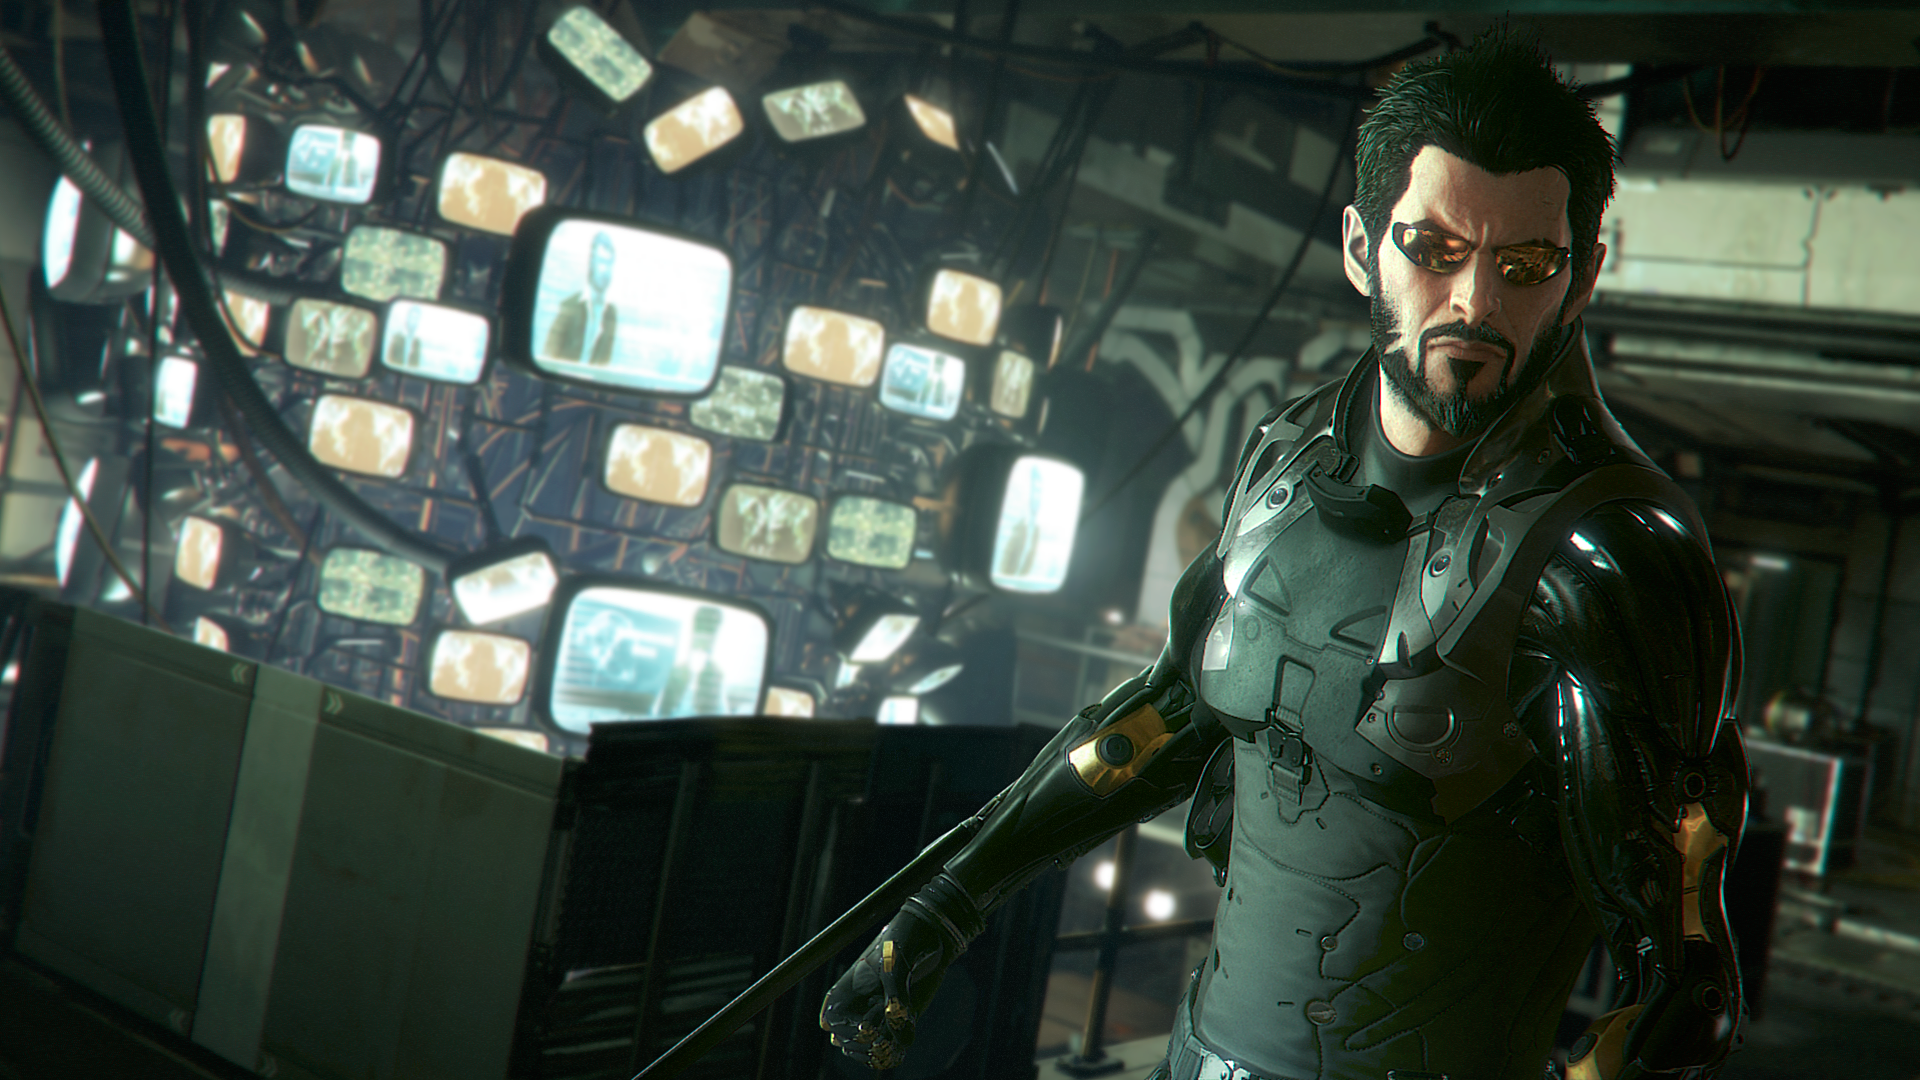 『Deus Ex: Mankind Divided』ゲーム画面